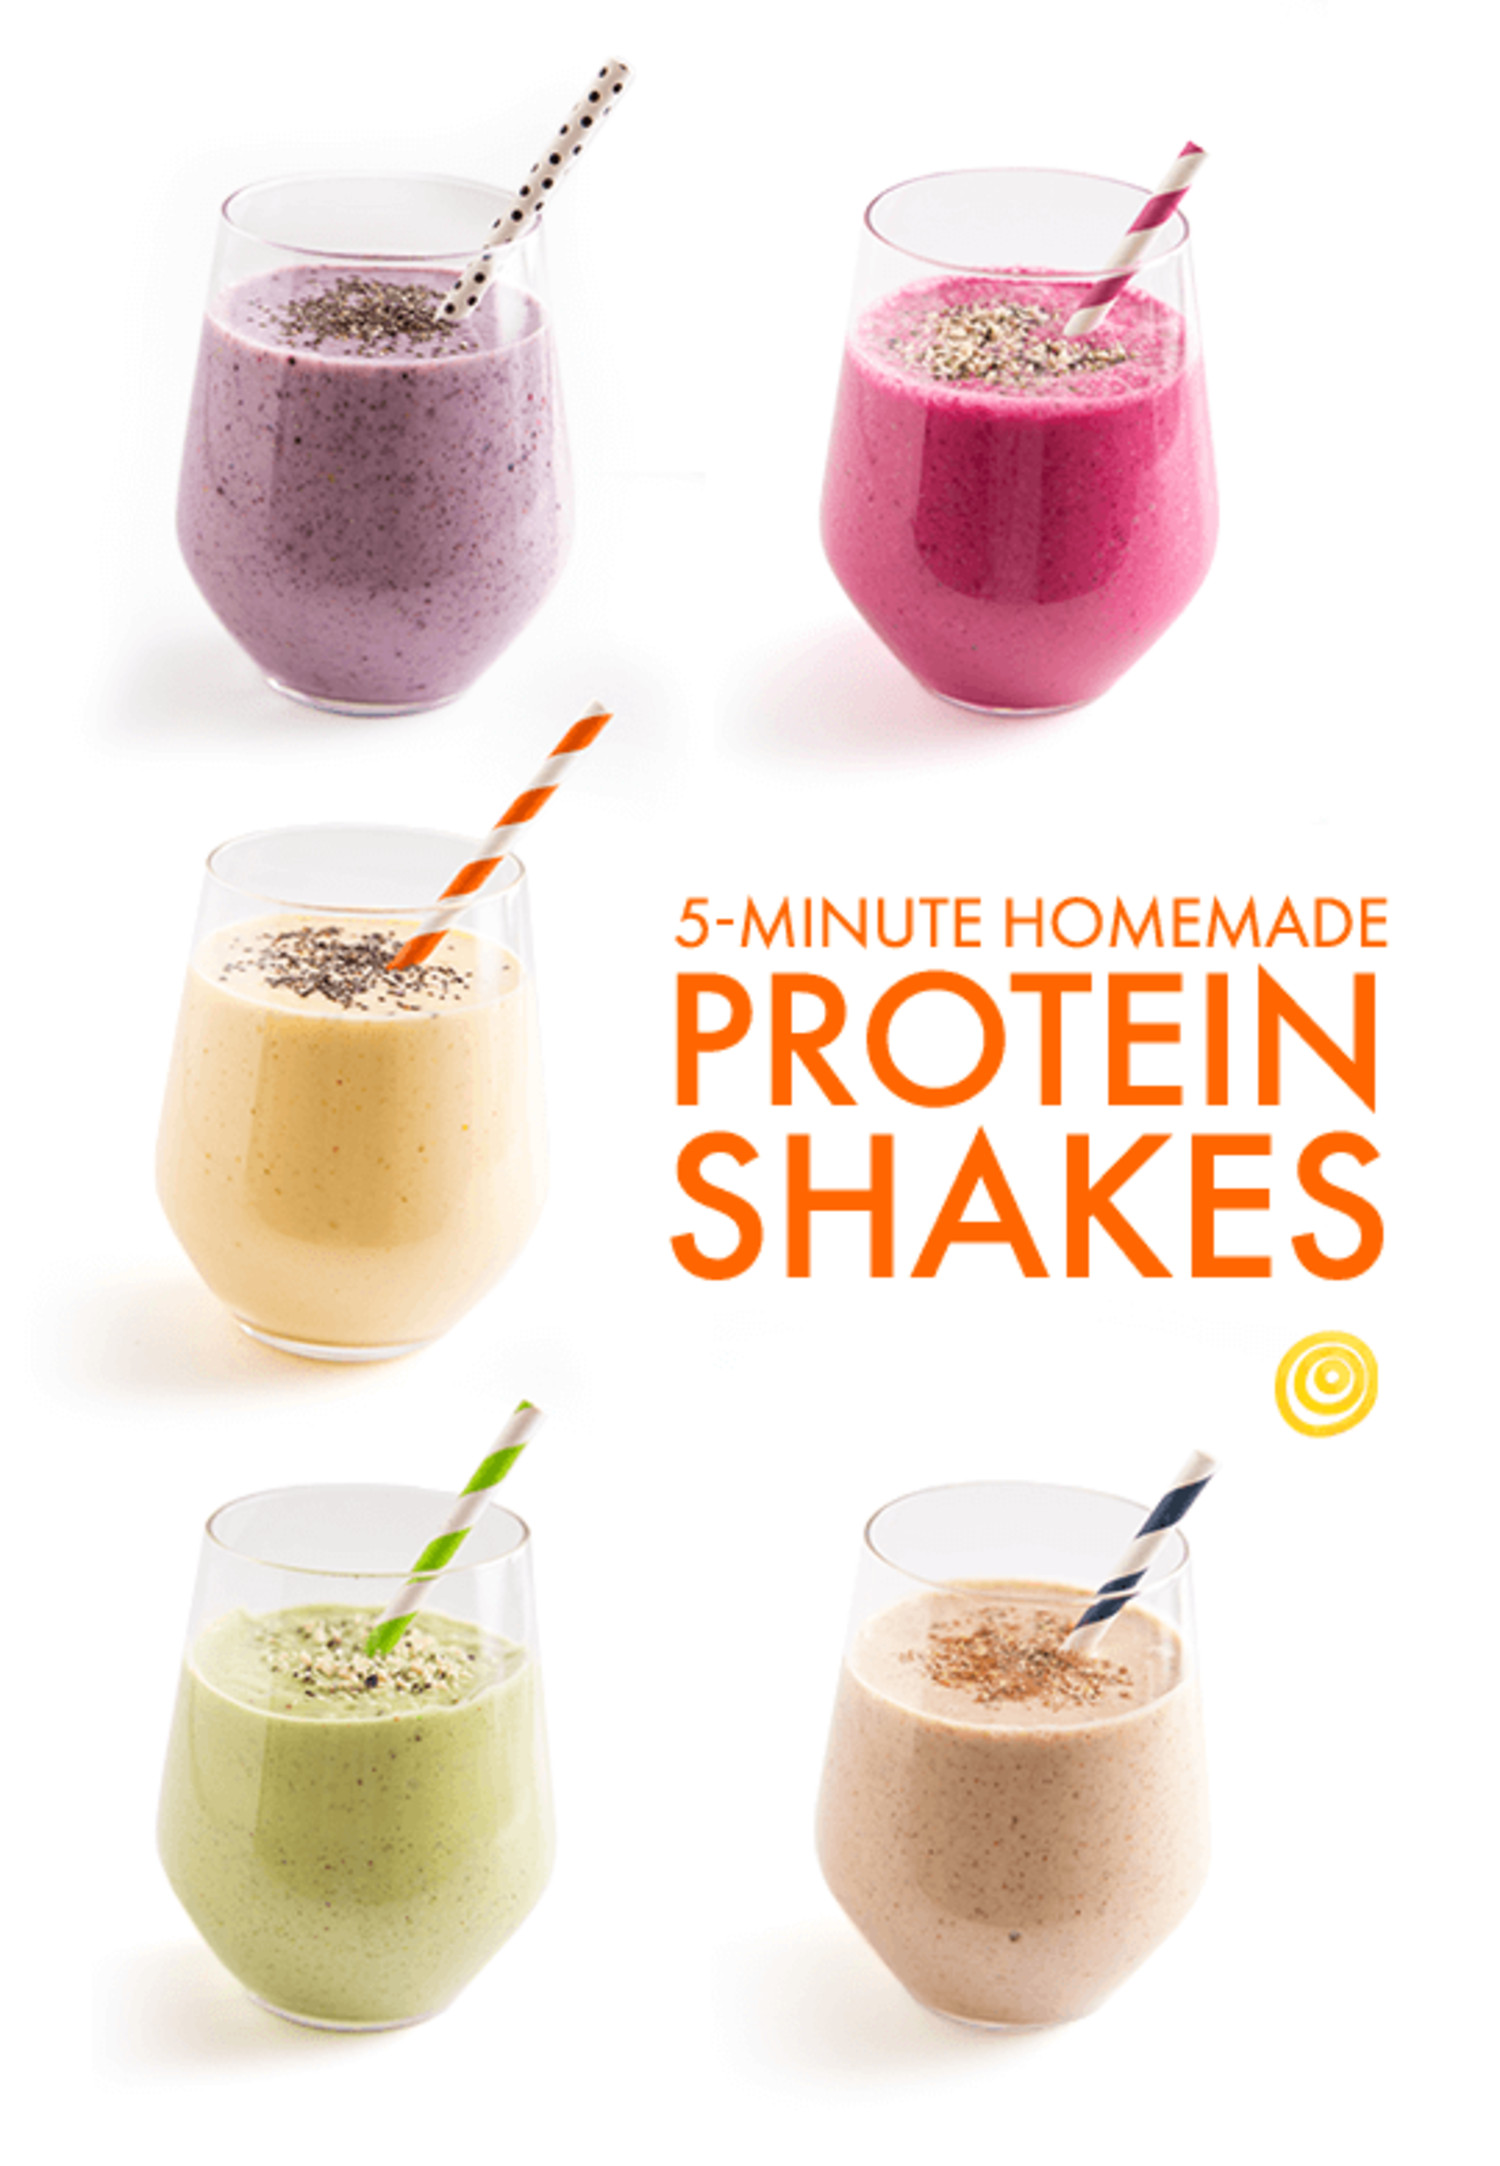 Best ideas about DIY Protein Shakes . Save or Pin 5 Minute Homemade Protein Shakes Now.